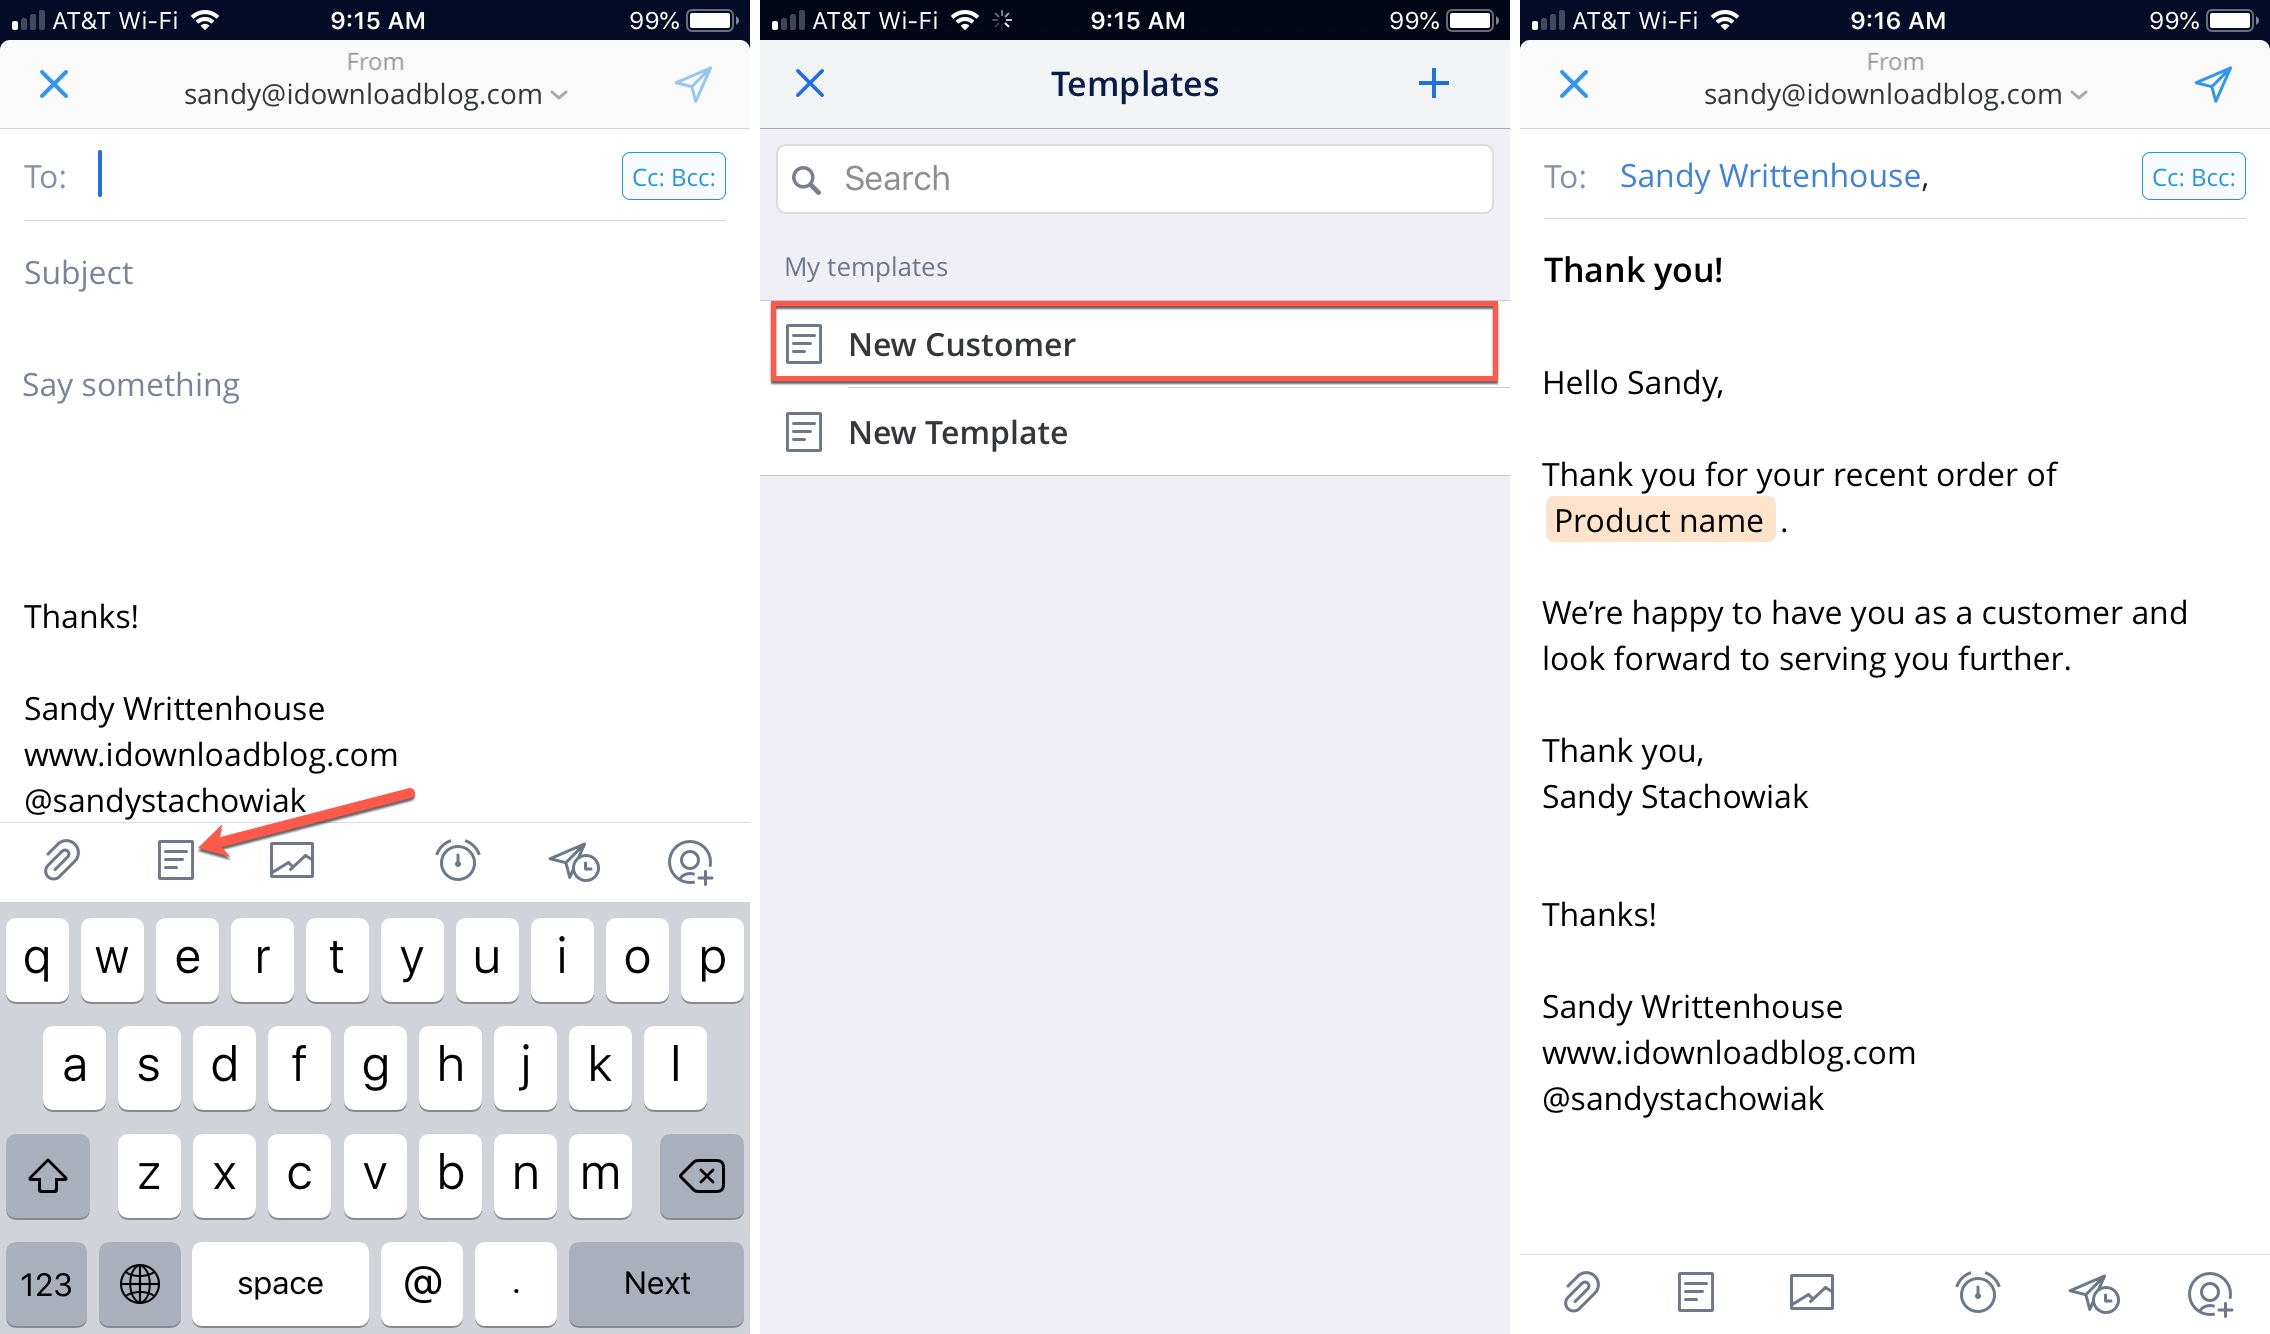 Spark Email Use New Template on iPhone